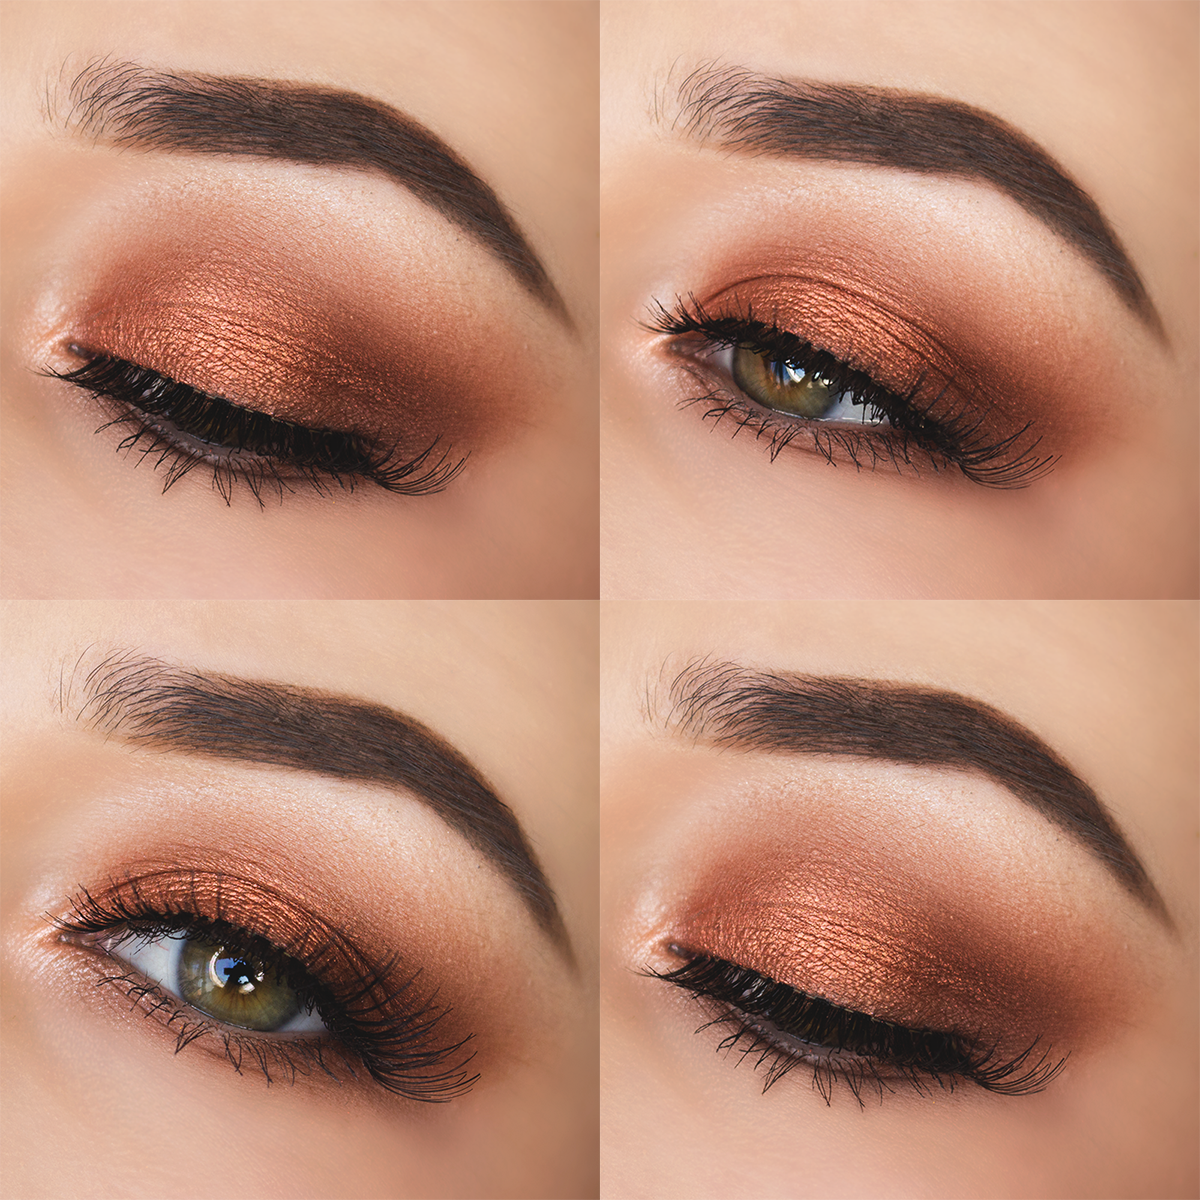 Eyeshadow Colors For Natural Look